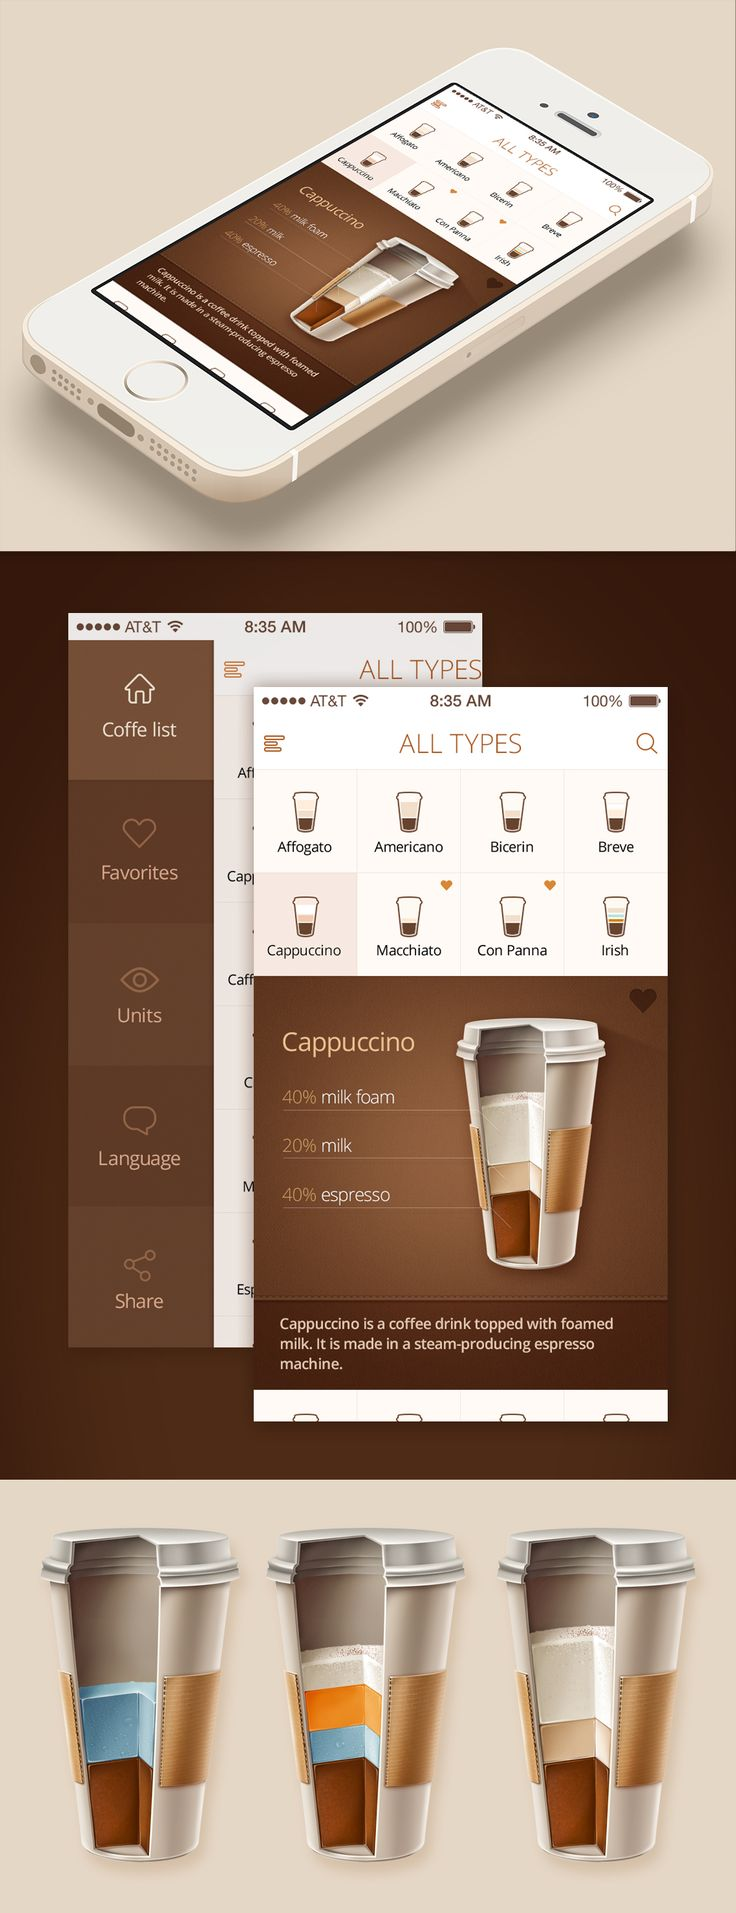 http://dribbble.com/shots/1394996-Coffee/attachments/202075